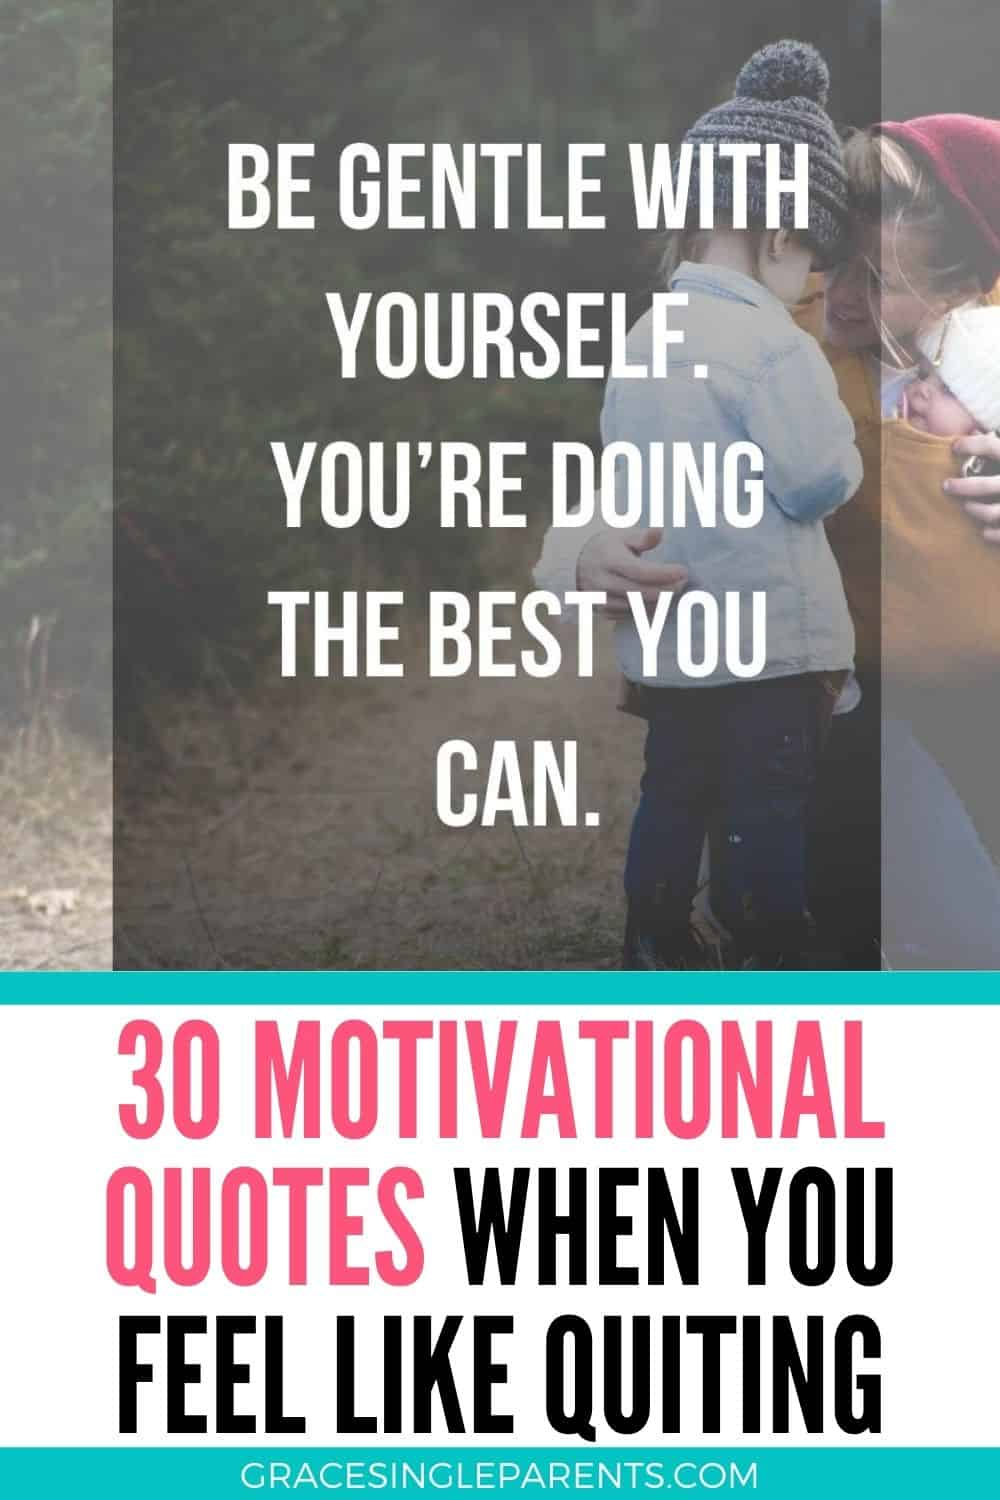 30 Motivational Quotes When You Feel Like Quitting